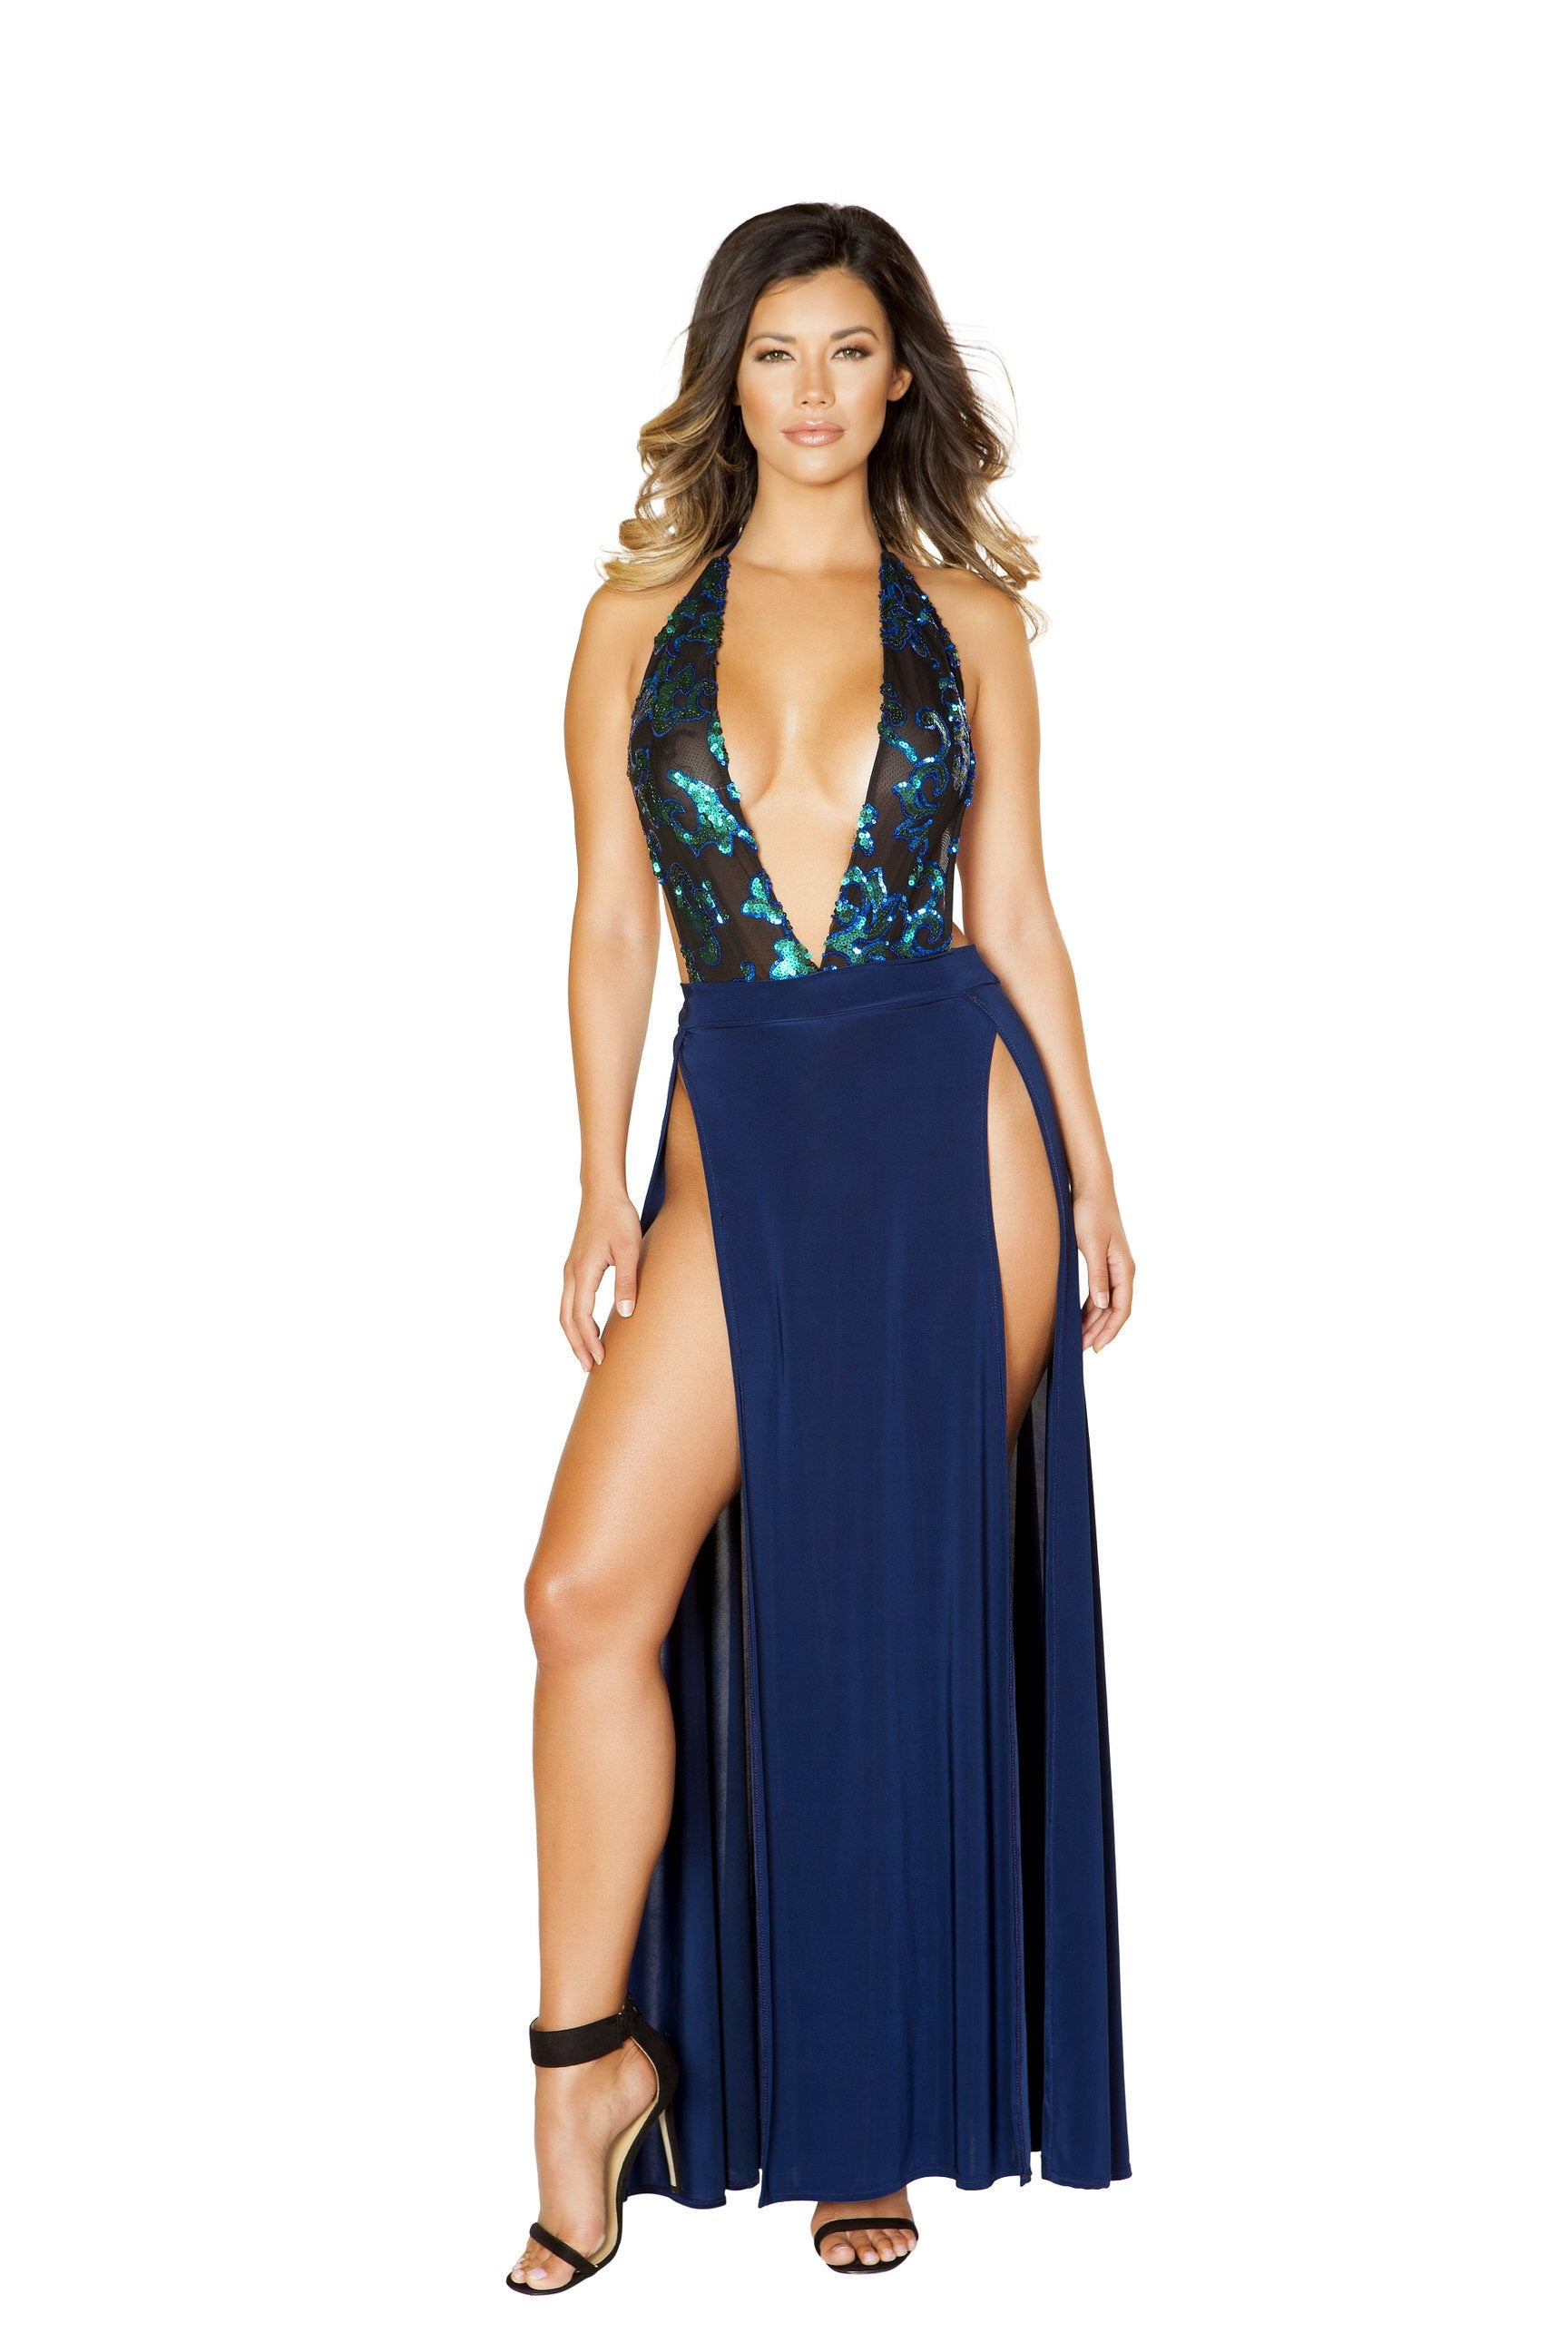 3527 - Includes Low Neck Sheer and Sequin Applique Romper and High Slit Skirt - pink-ritual